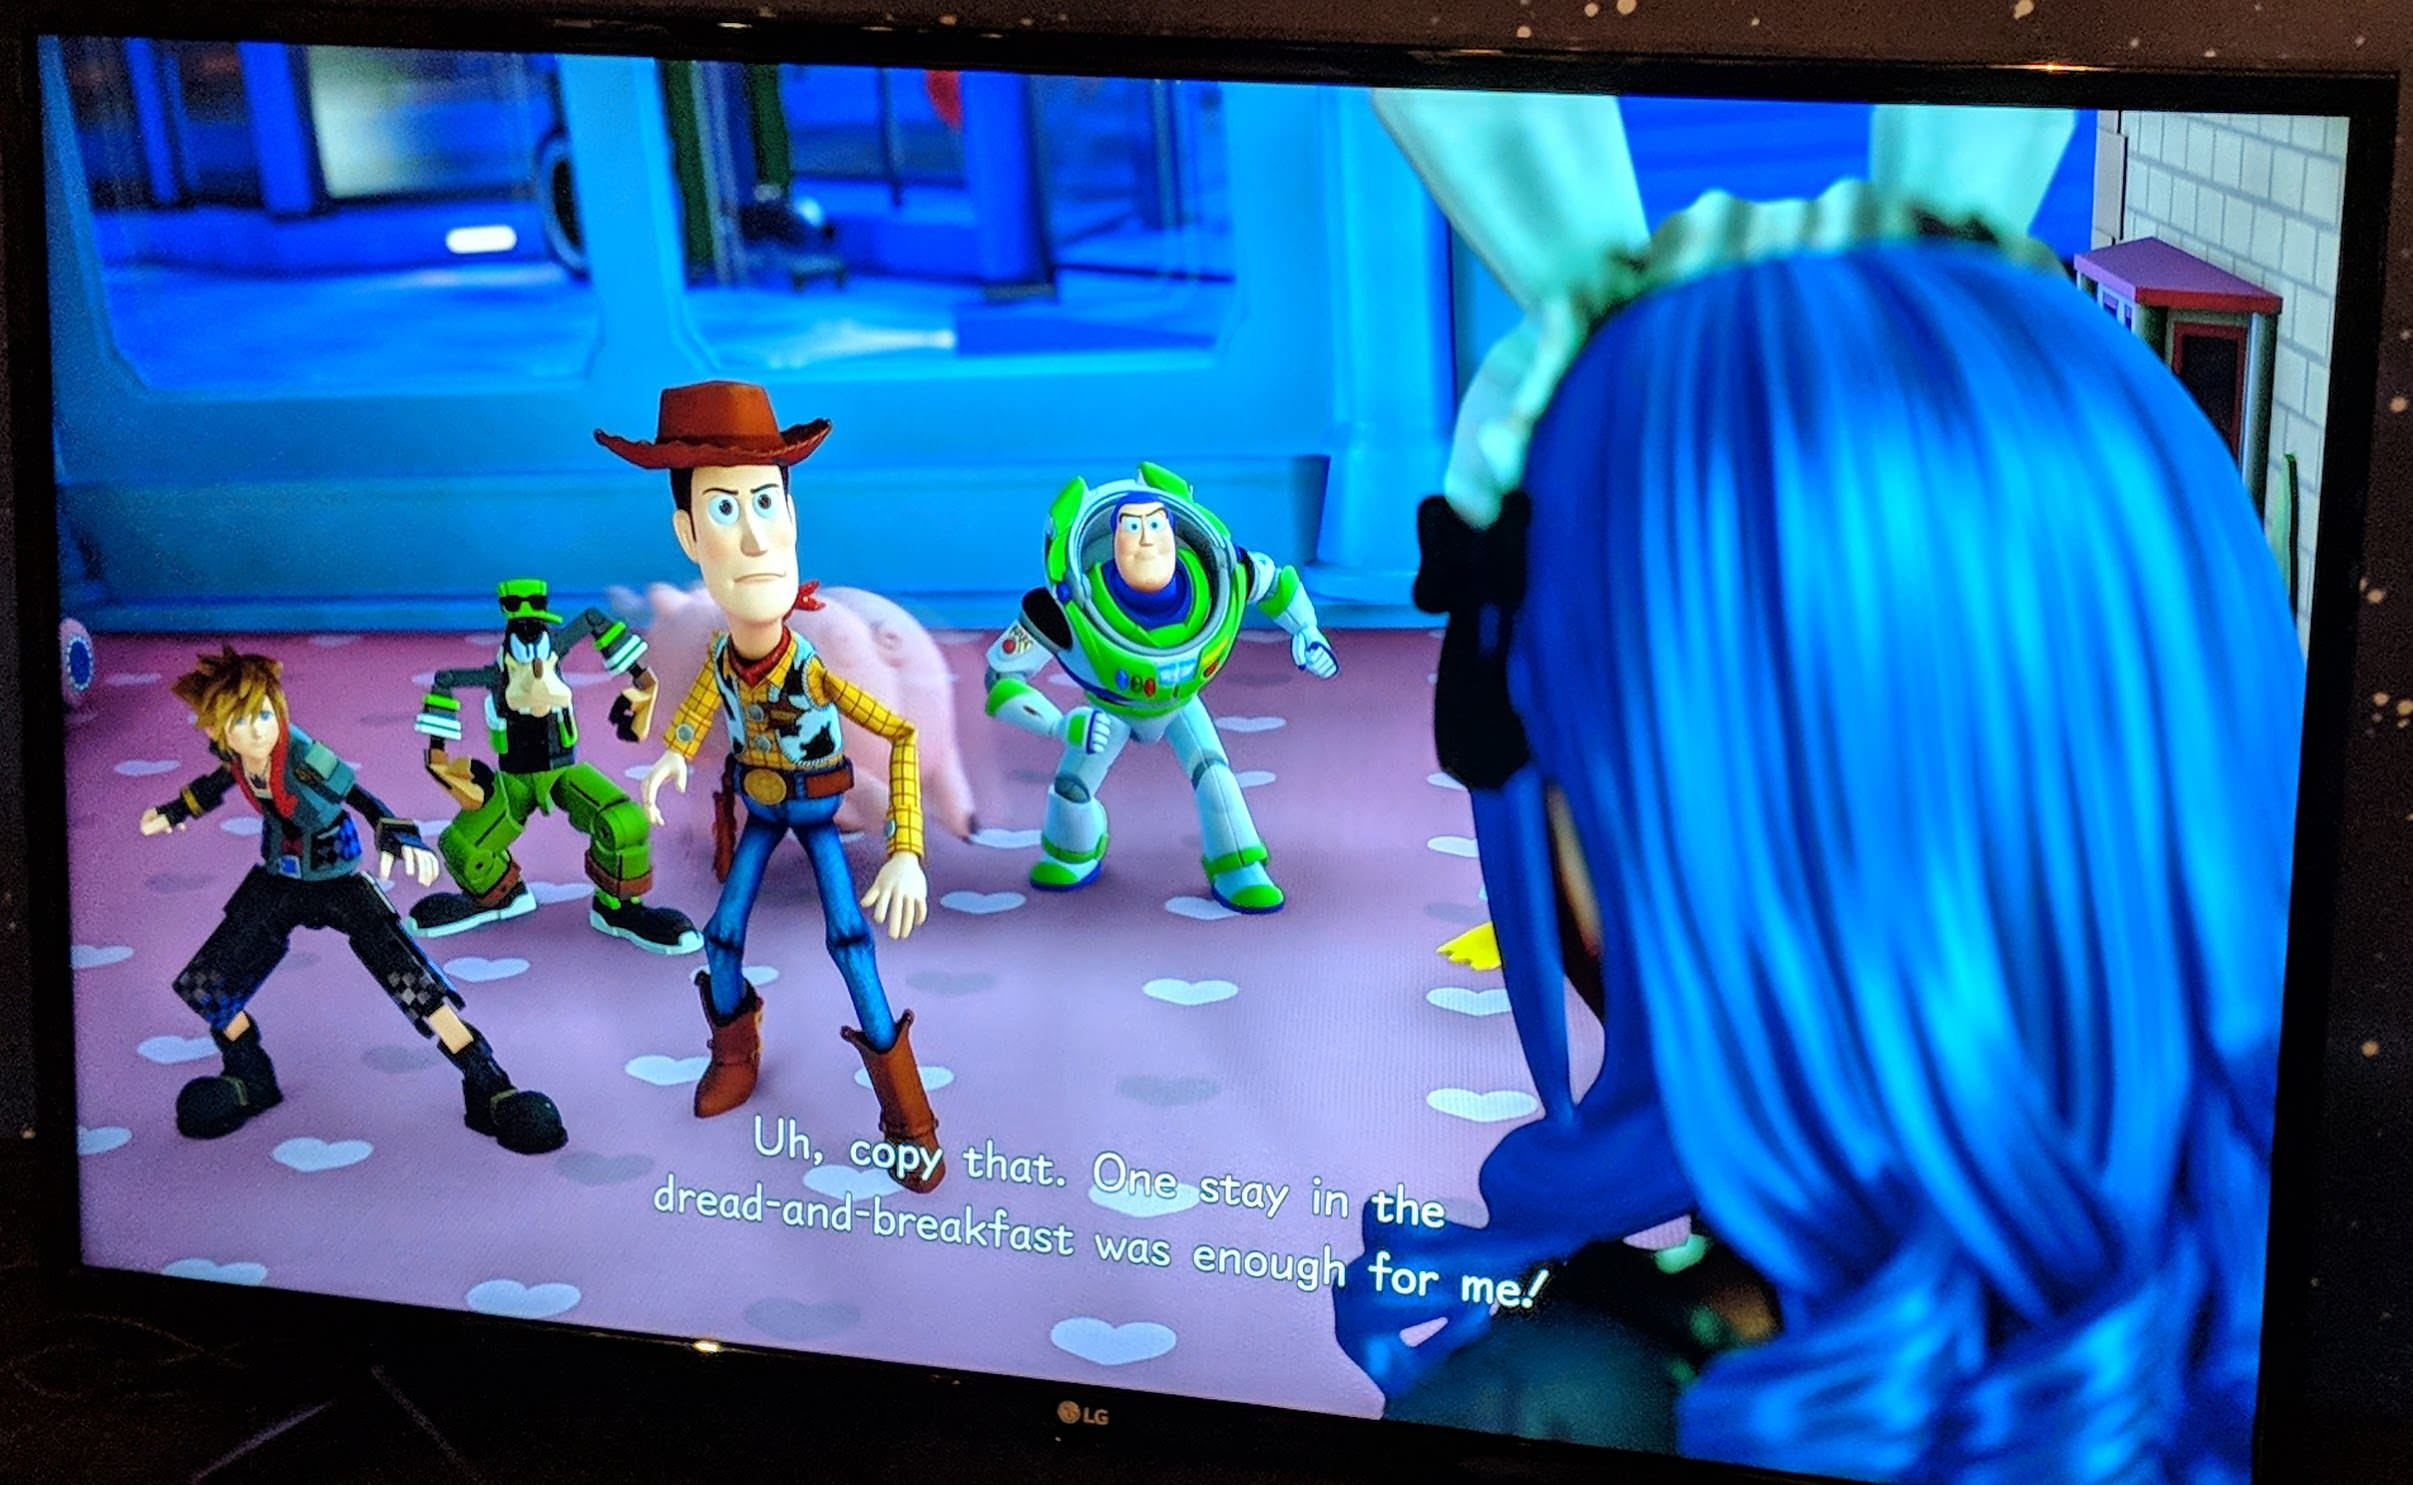 KH3-Off-Screen-Leak_2018_05-17-18_006.jpg